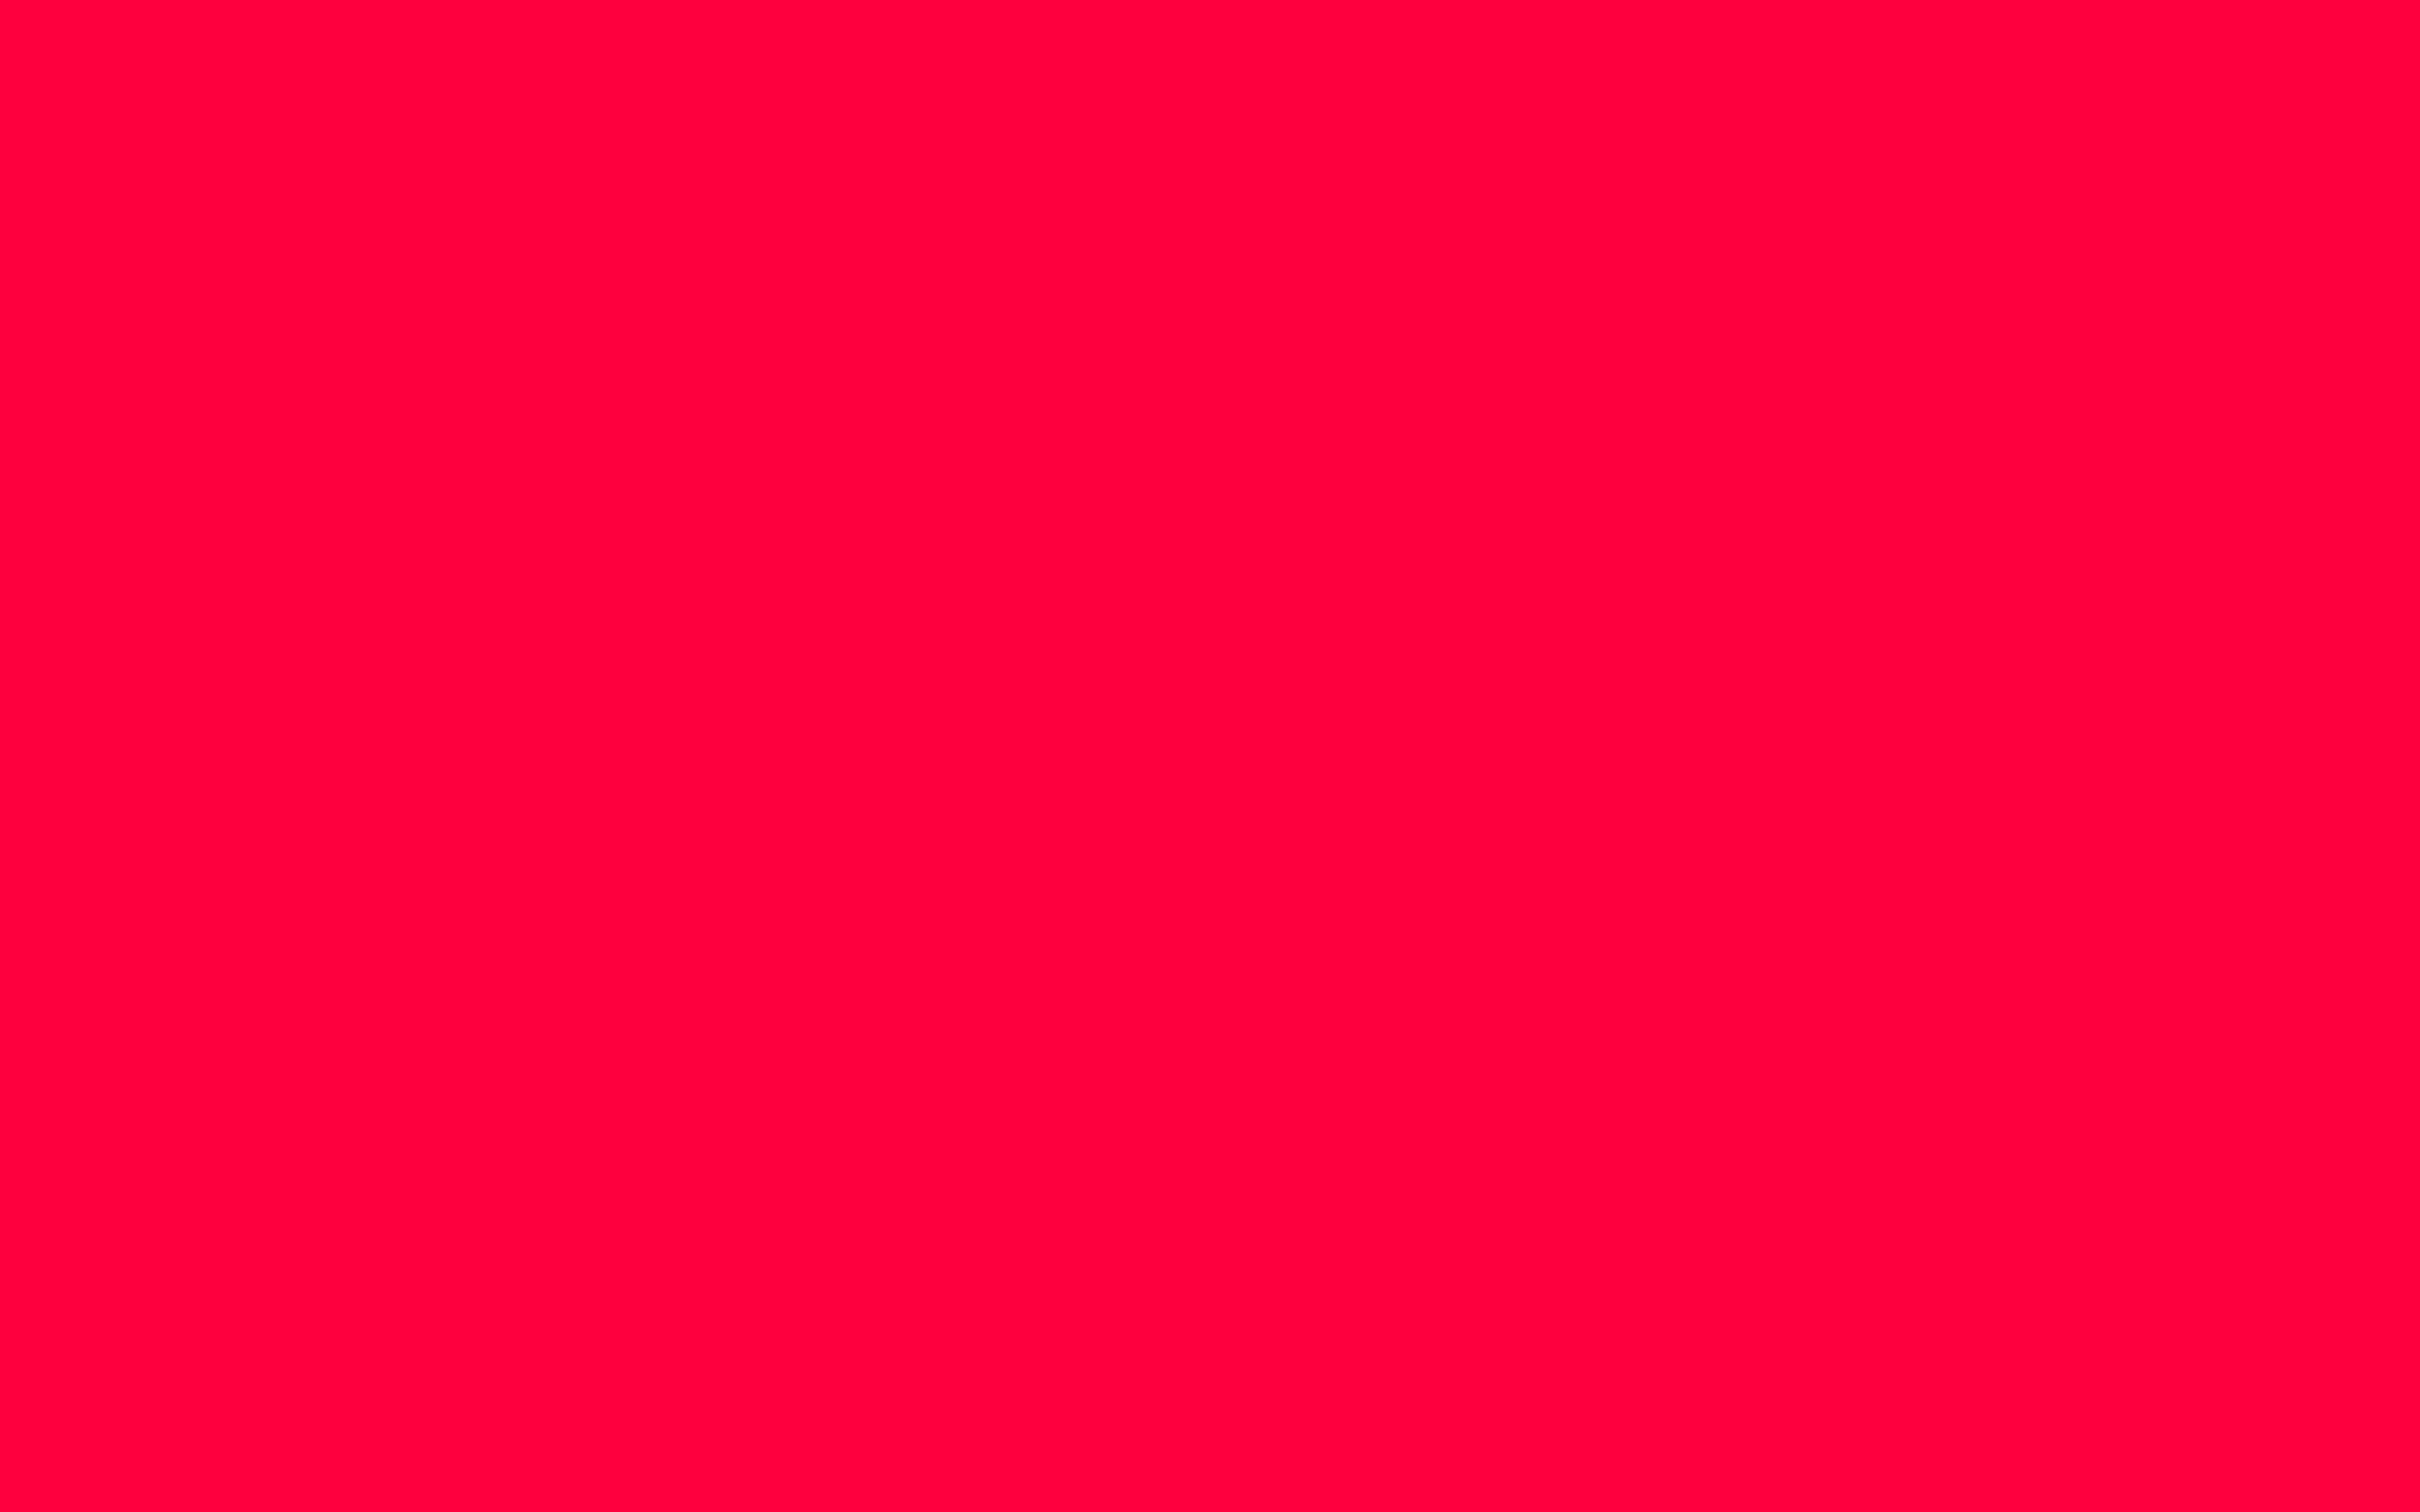 2880x1800 Electric Crimson Solid Color Background